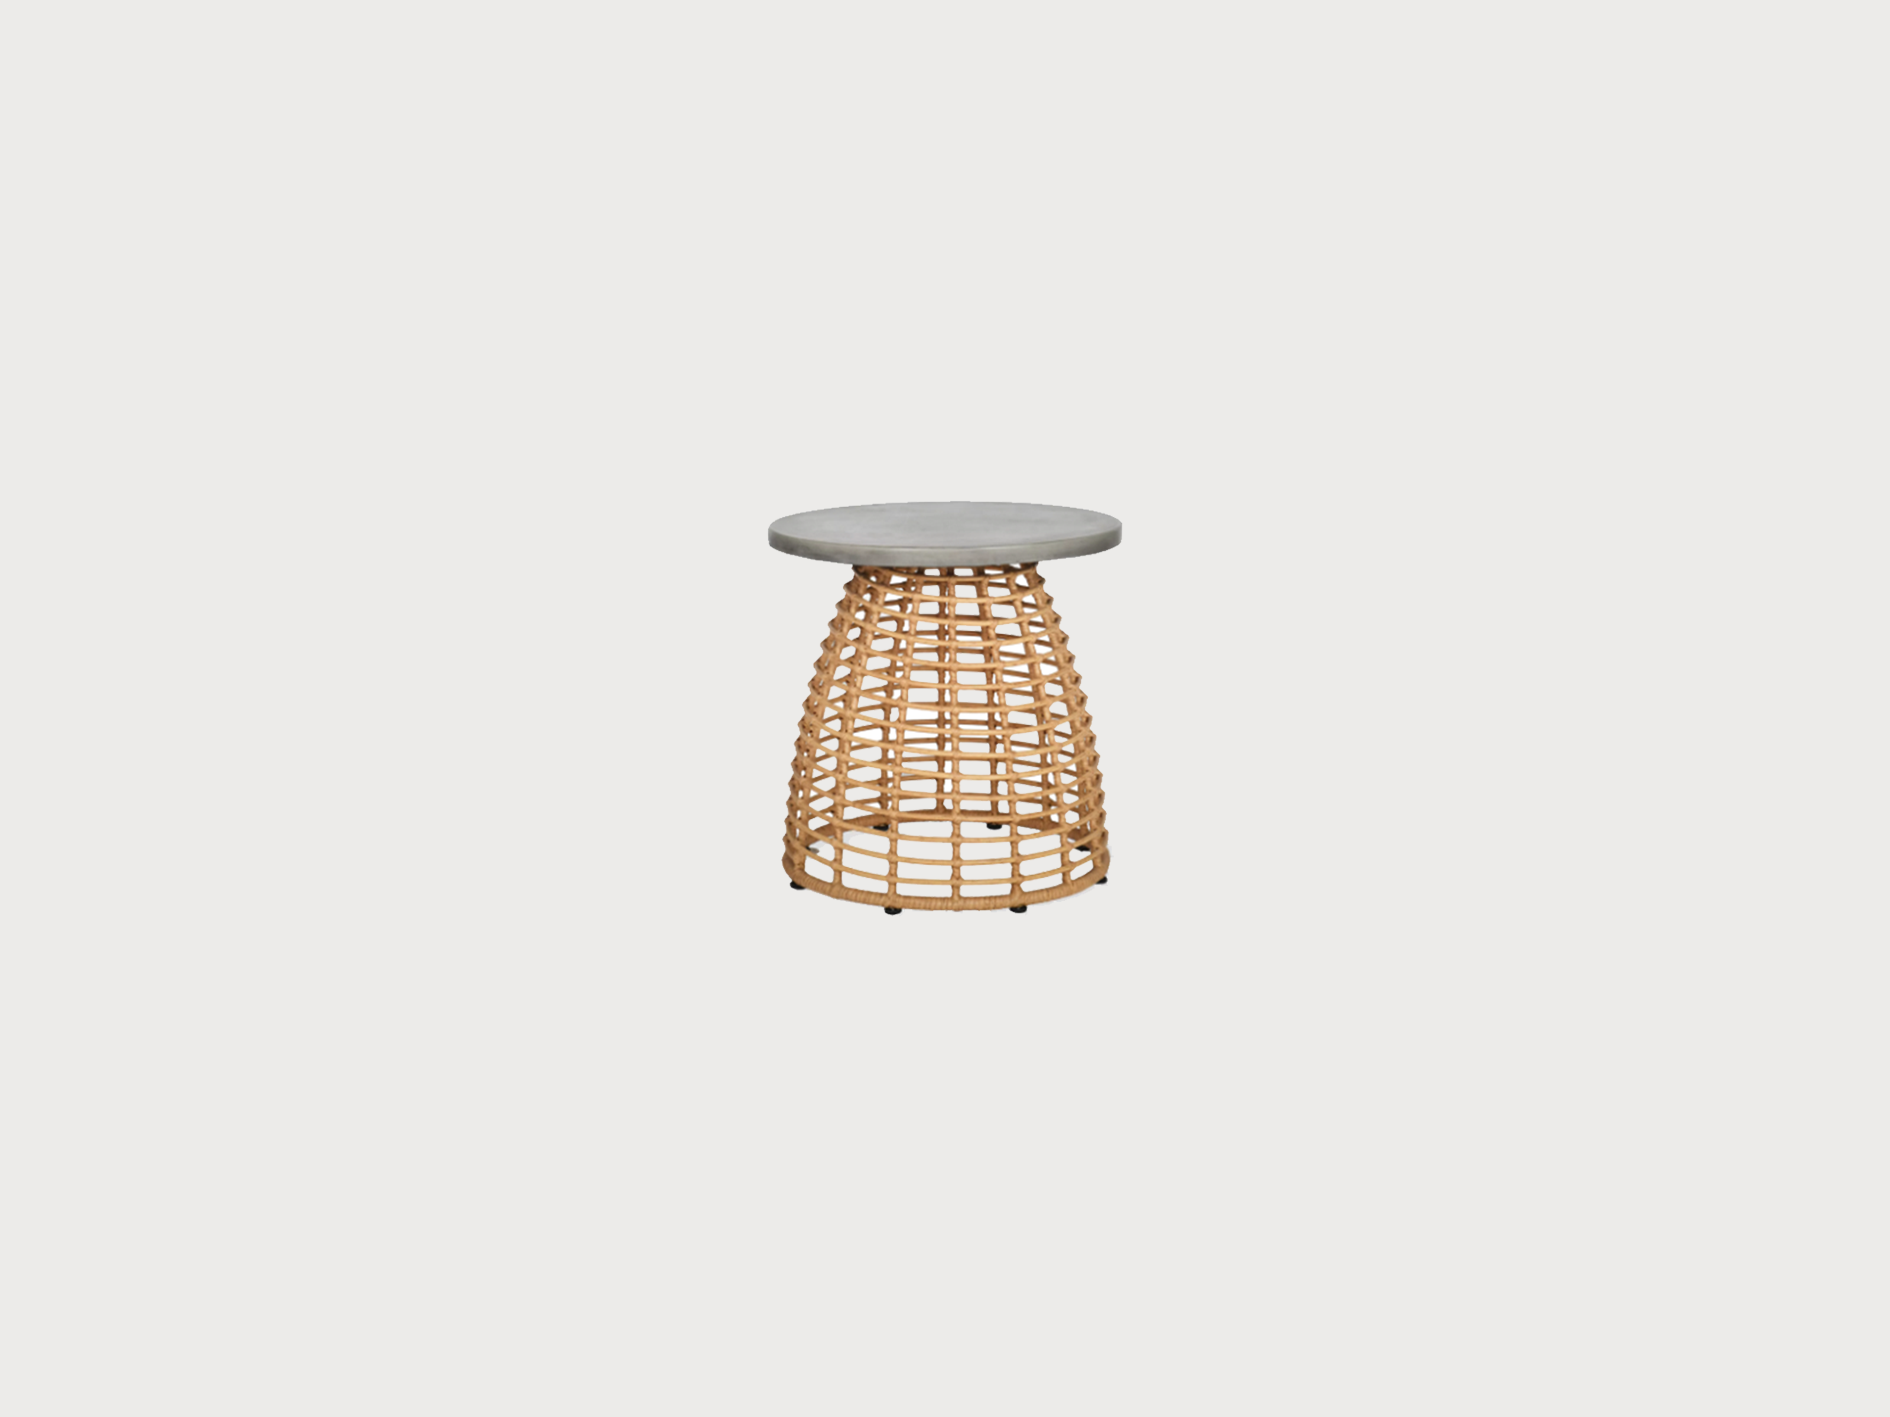 Bamboo wicker table